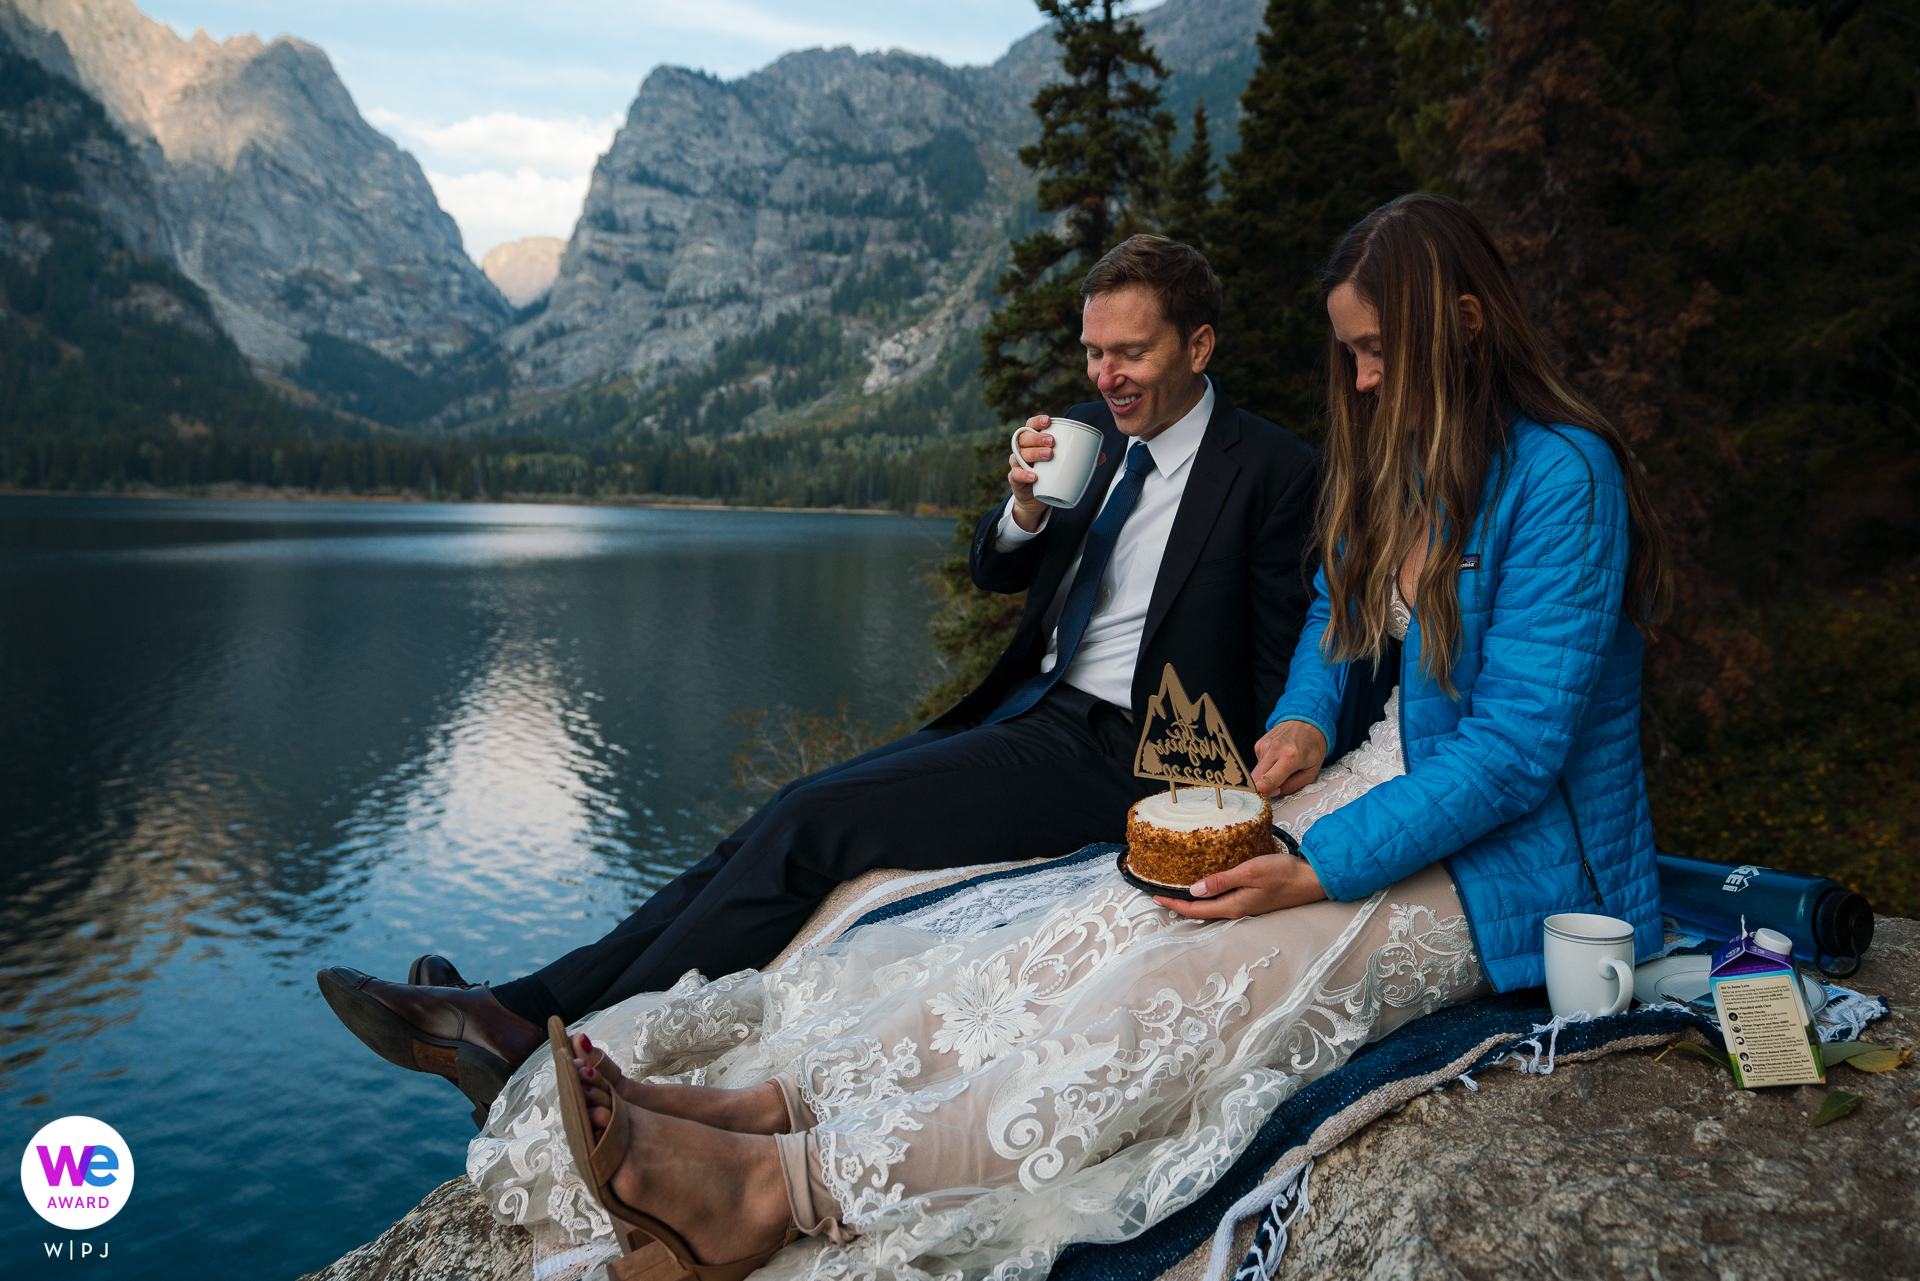 Grand Teton National Park Wy Adventure Elopement Photography Wyoming Mountain Weddings Wpja